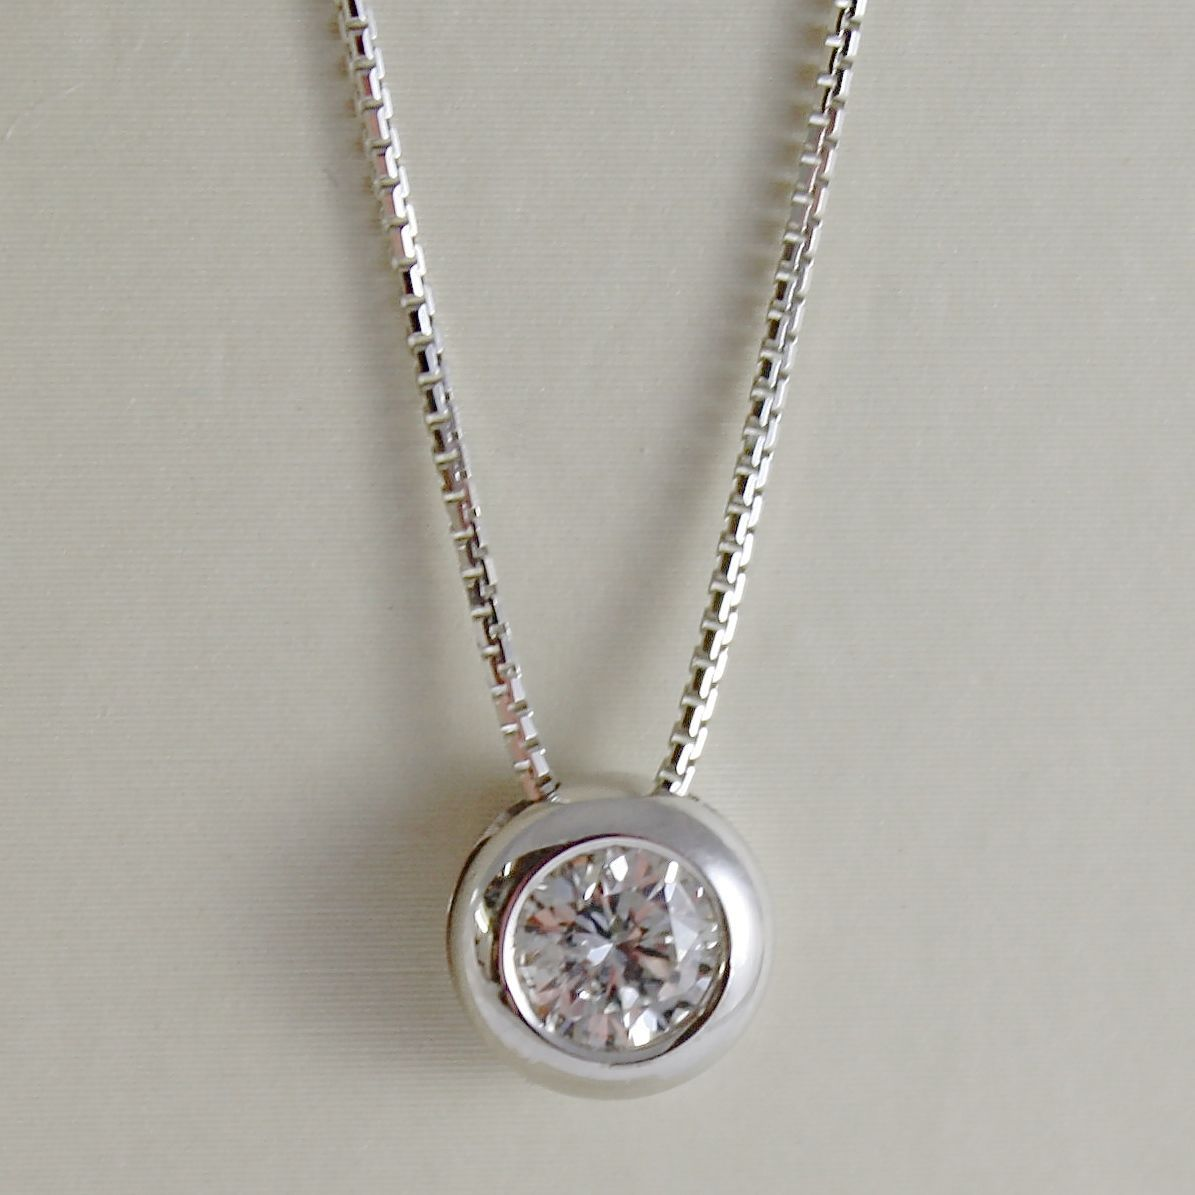 18K WHITE GOLD NECKLACE WITH DIAMOND 0.45 CARATS, VENETIAN CHAIN MADE IN ITALY